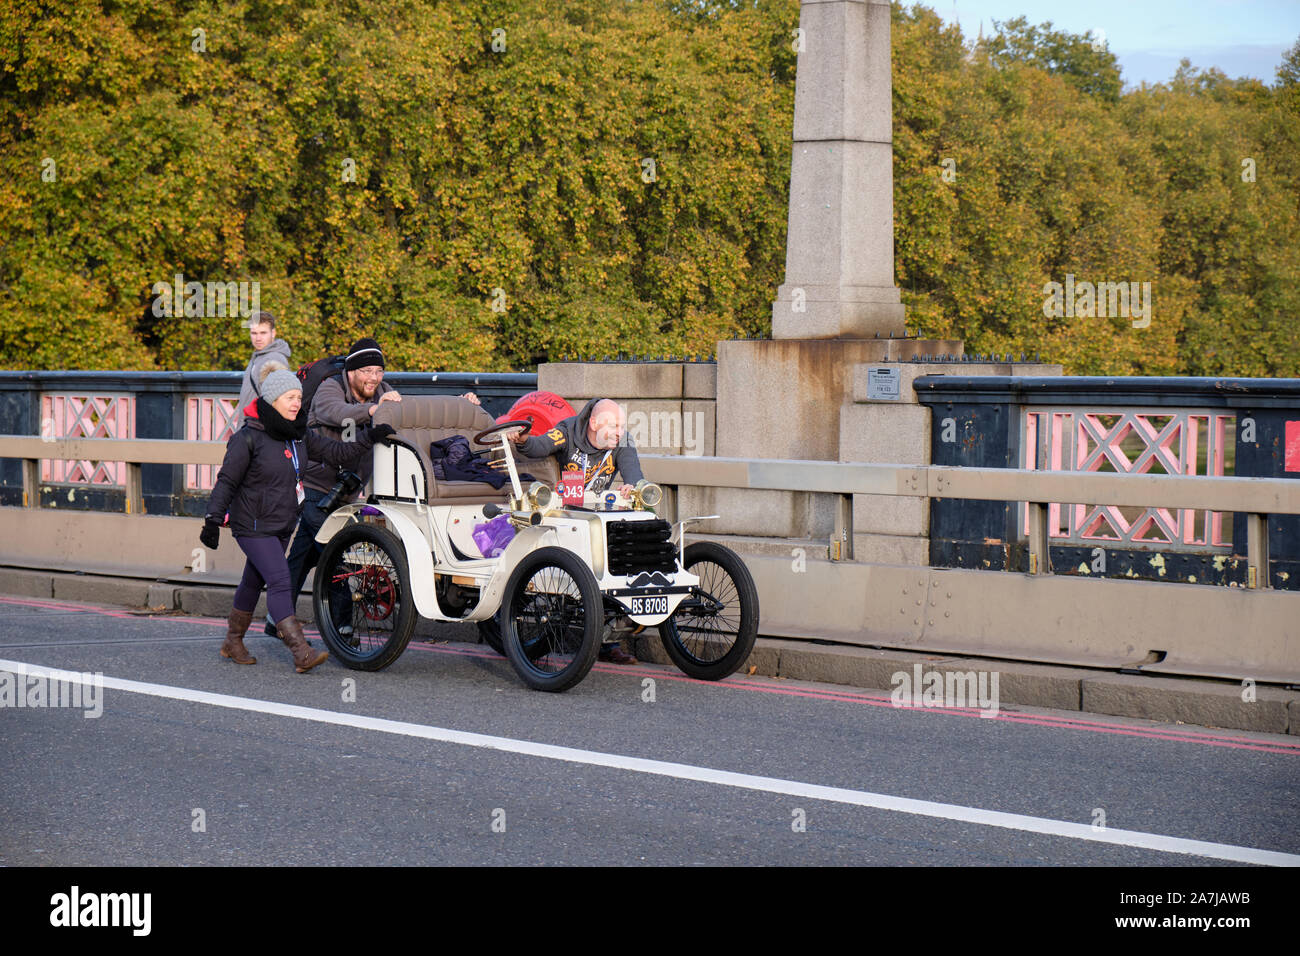 london-uk-3rd-november-2019-early-push-to-go-up-bridge-for-participants-crossing-the-thames-on-lambeth-bridge-in-this-years-edition-of-the-bonhams-london-to-brighton-veteran-car-run-credit-jf-pelletier-alamy-live-news-2A7JAWB.jpg